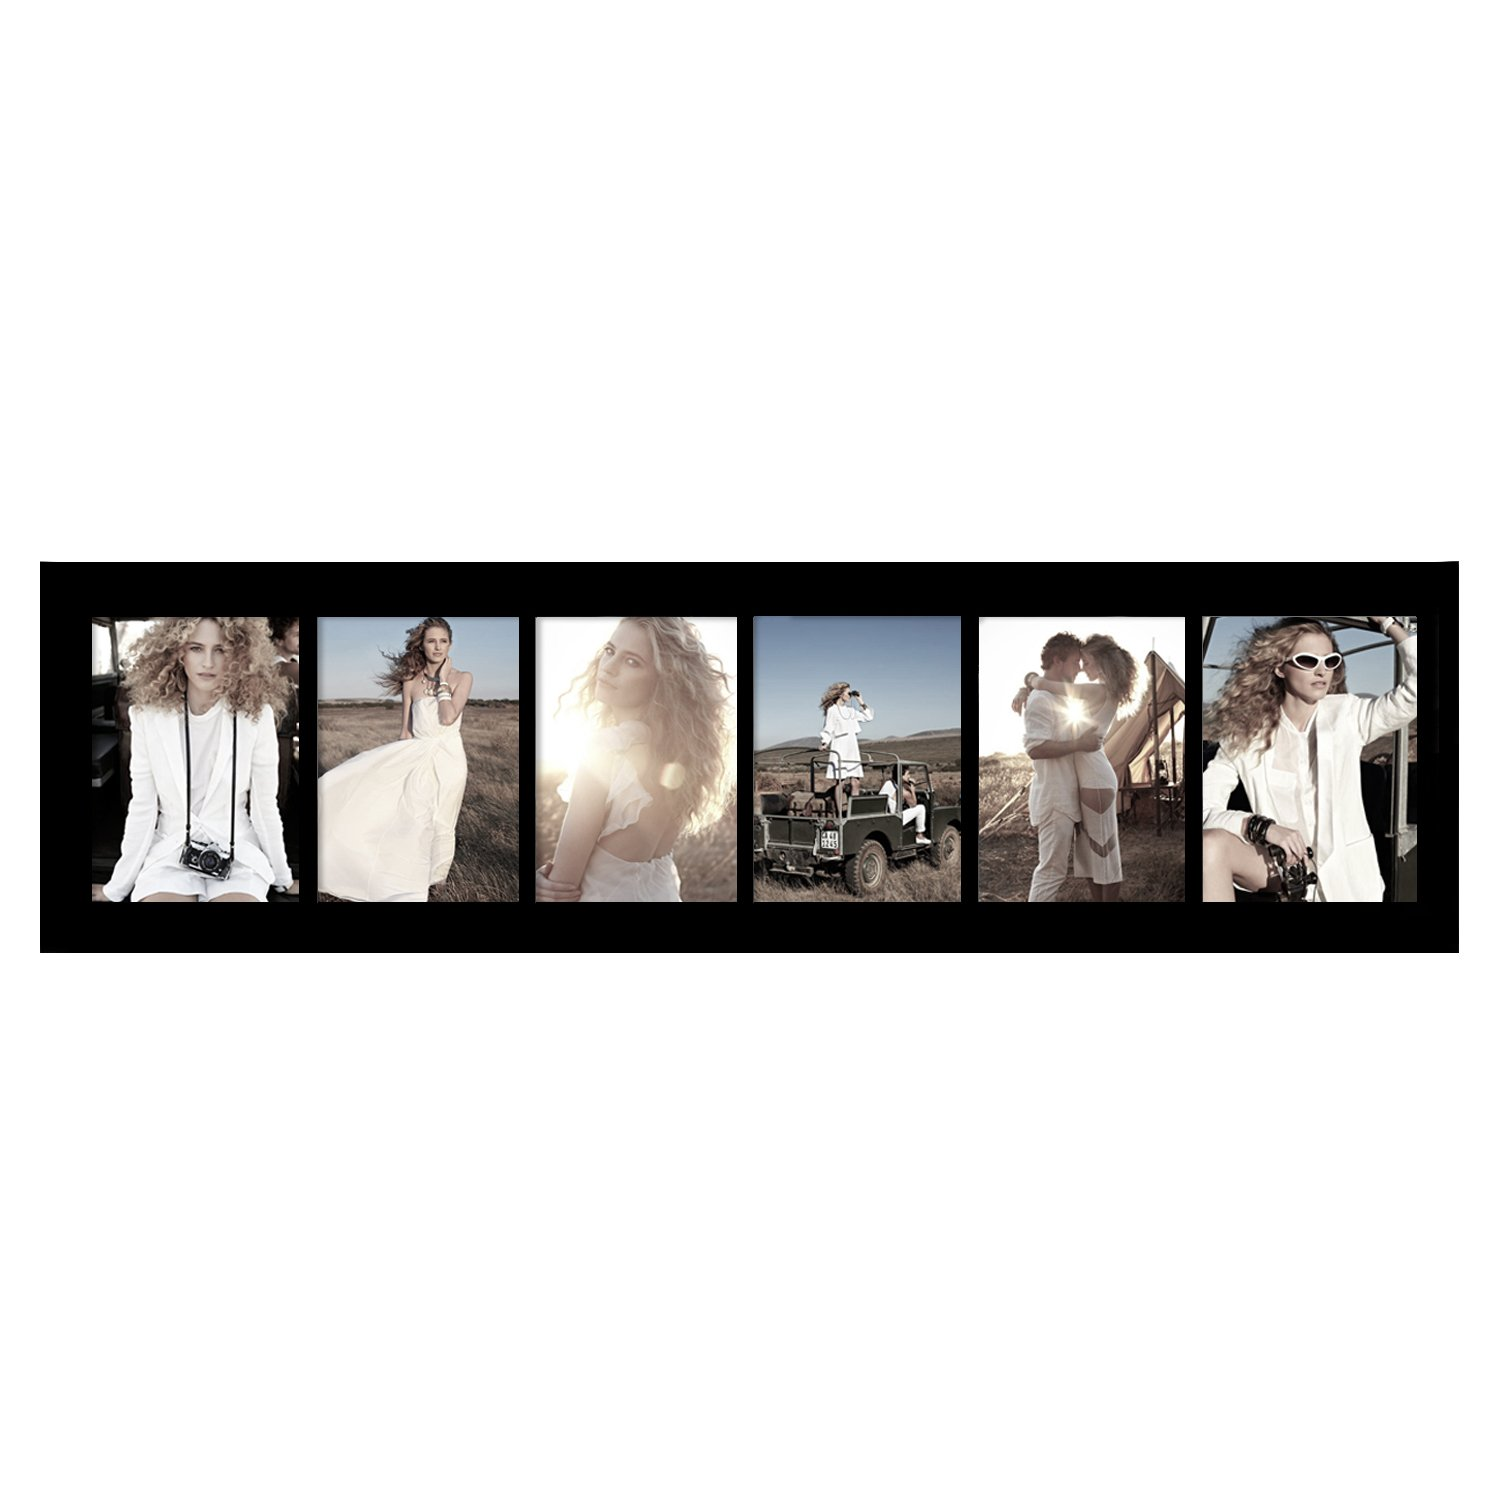 Amazon.com: Adeco [PF0275]6 Openings 5x7 Collage Picture Frame ...